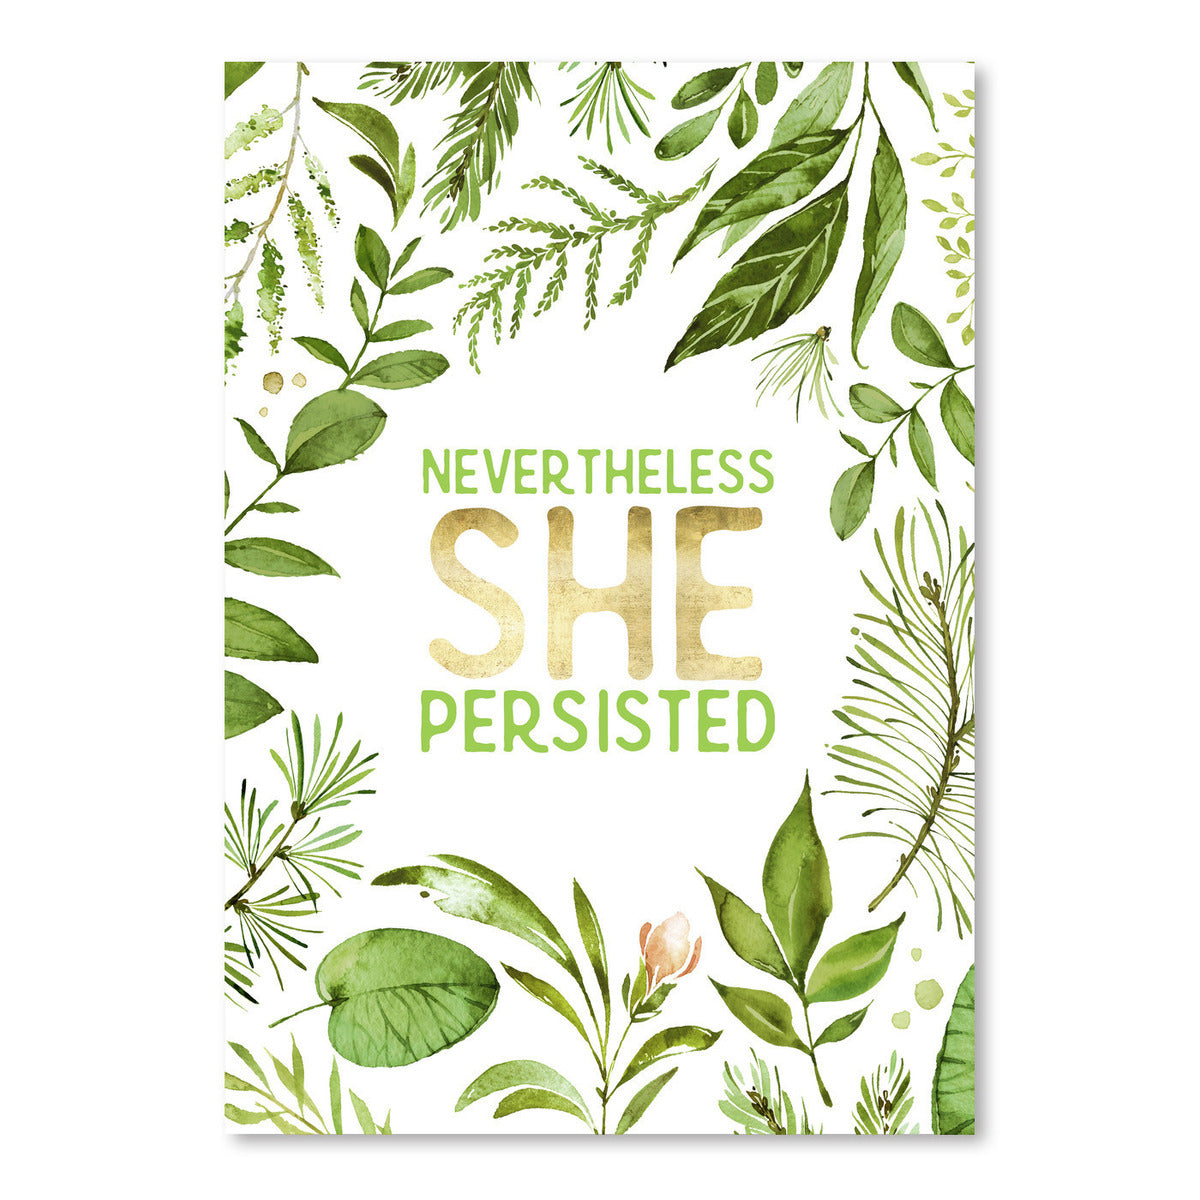 Nevertheless She Persisted by Wall + Wonder - Art Print - Americanflat